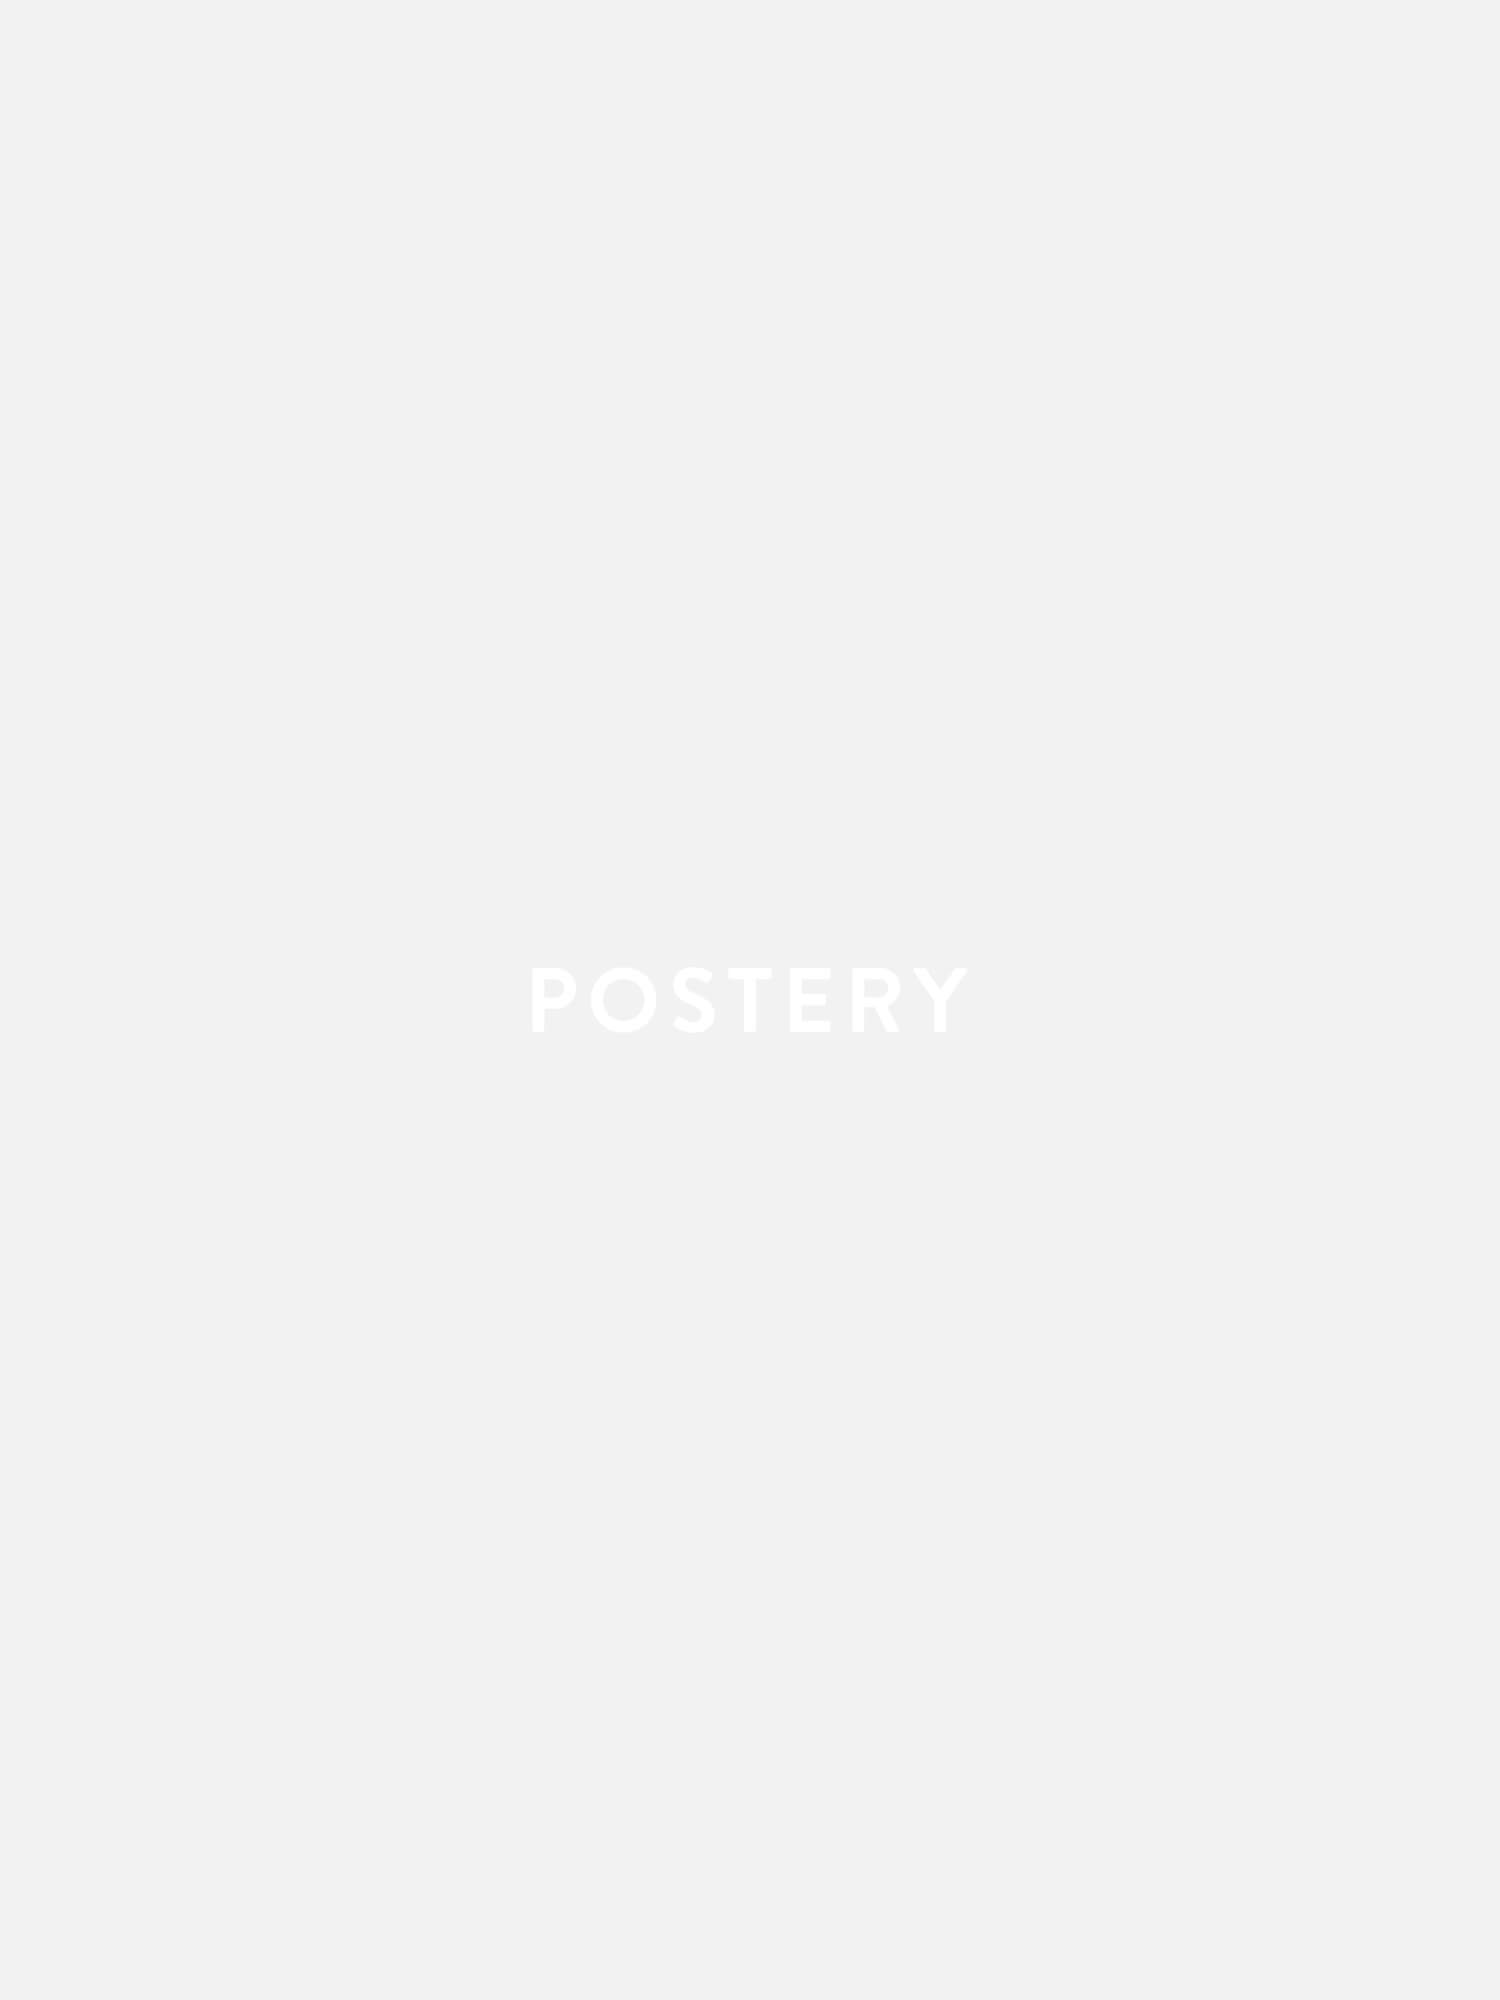 Bunny On The Moon Poster